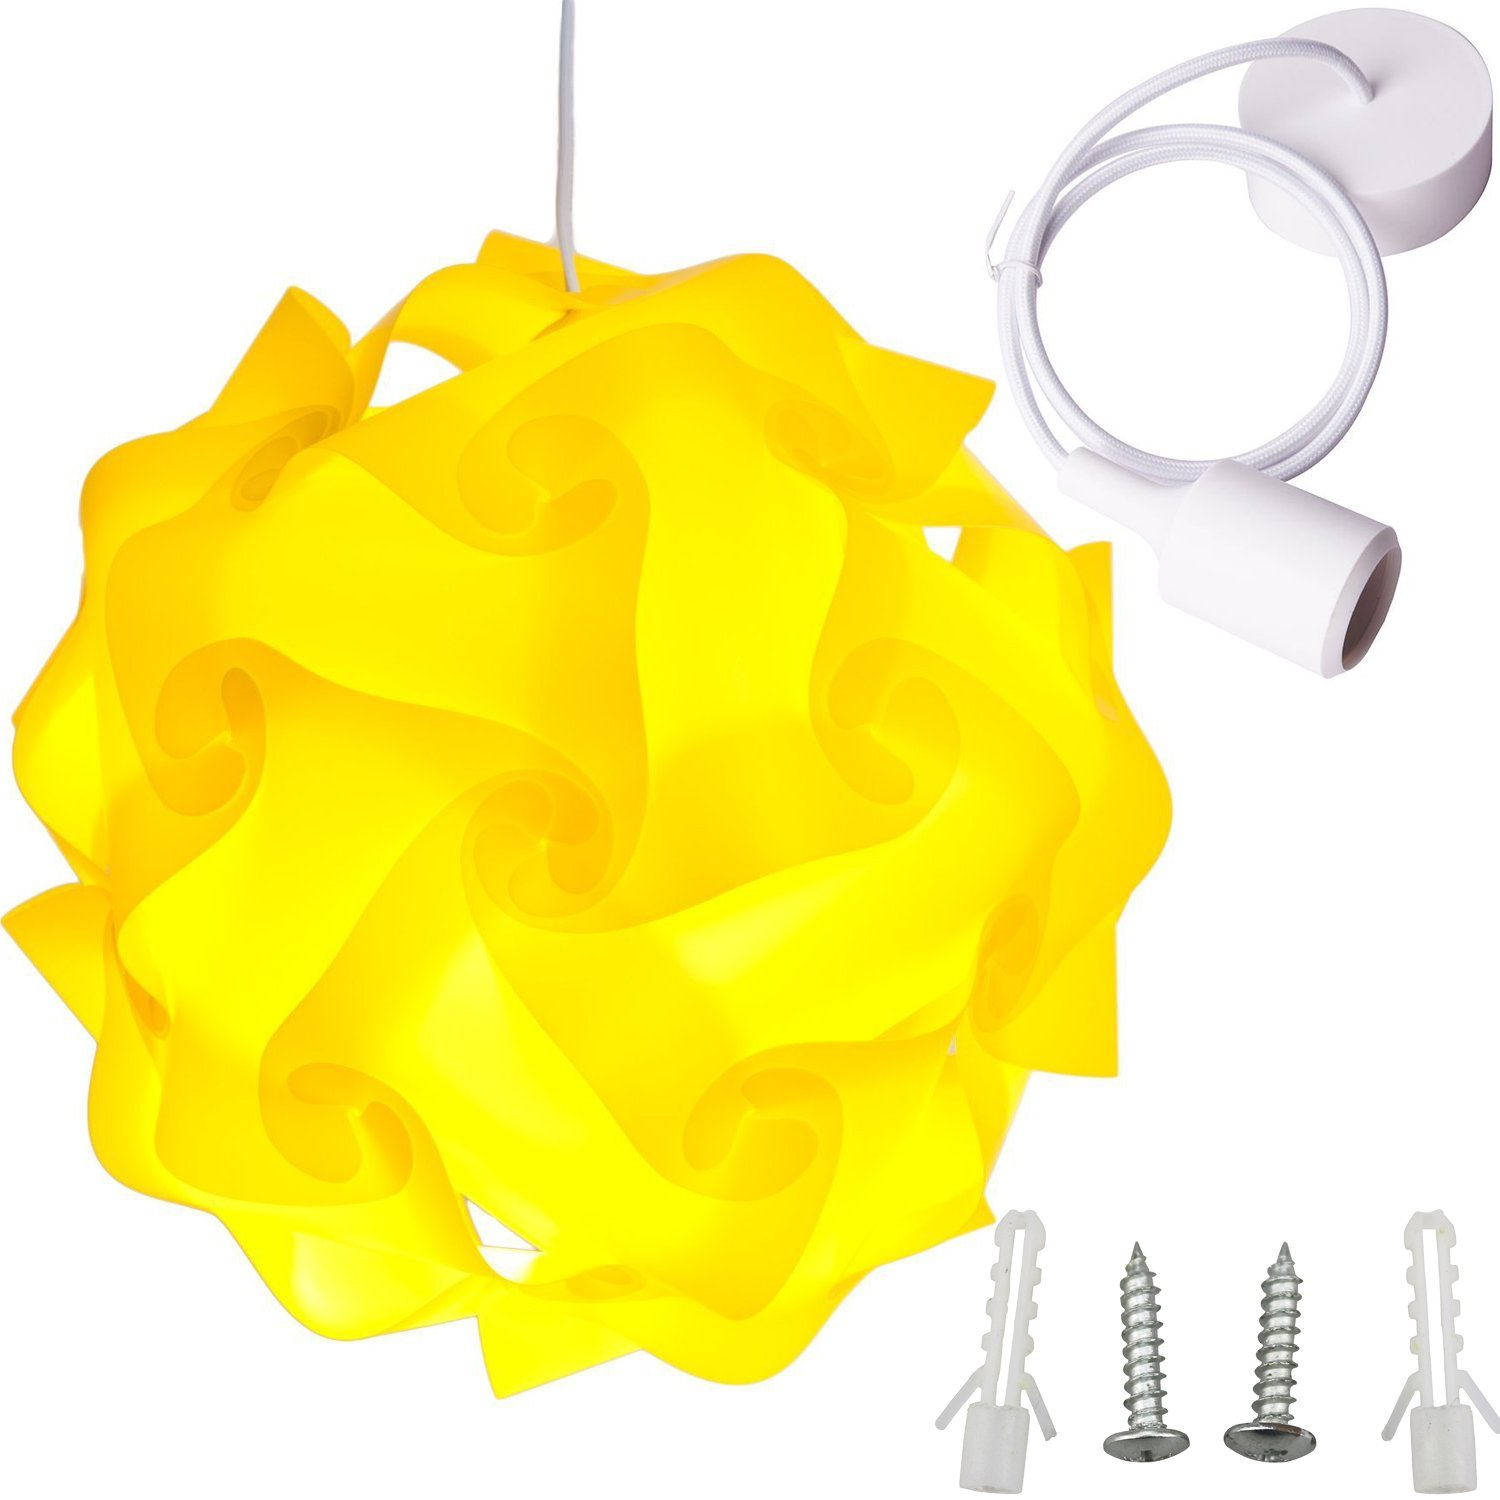 Lightingsky Ceiling Pendant DIY IQ Jigsaw Puzzle Lamp Shade Kit with 40 Inch Hanging Cord Yellow, Large-40cm